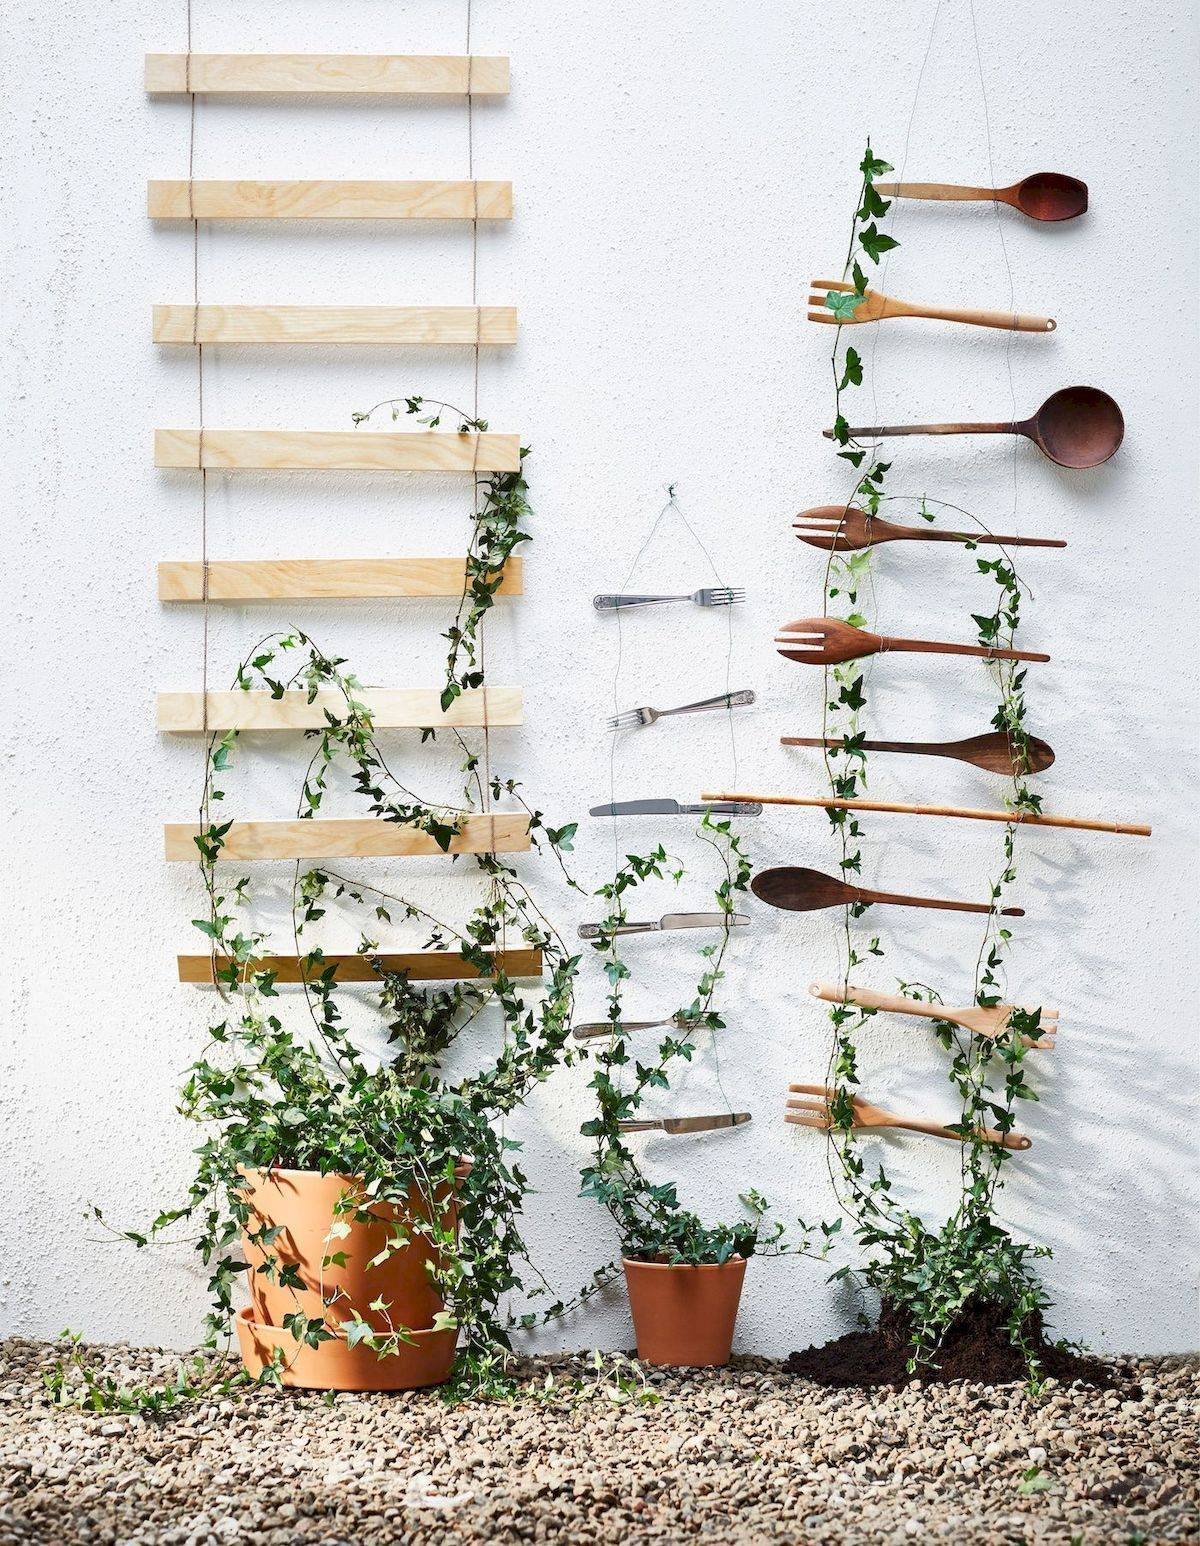 creative garden ideas-692498880183684430